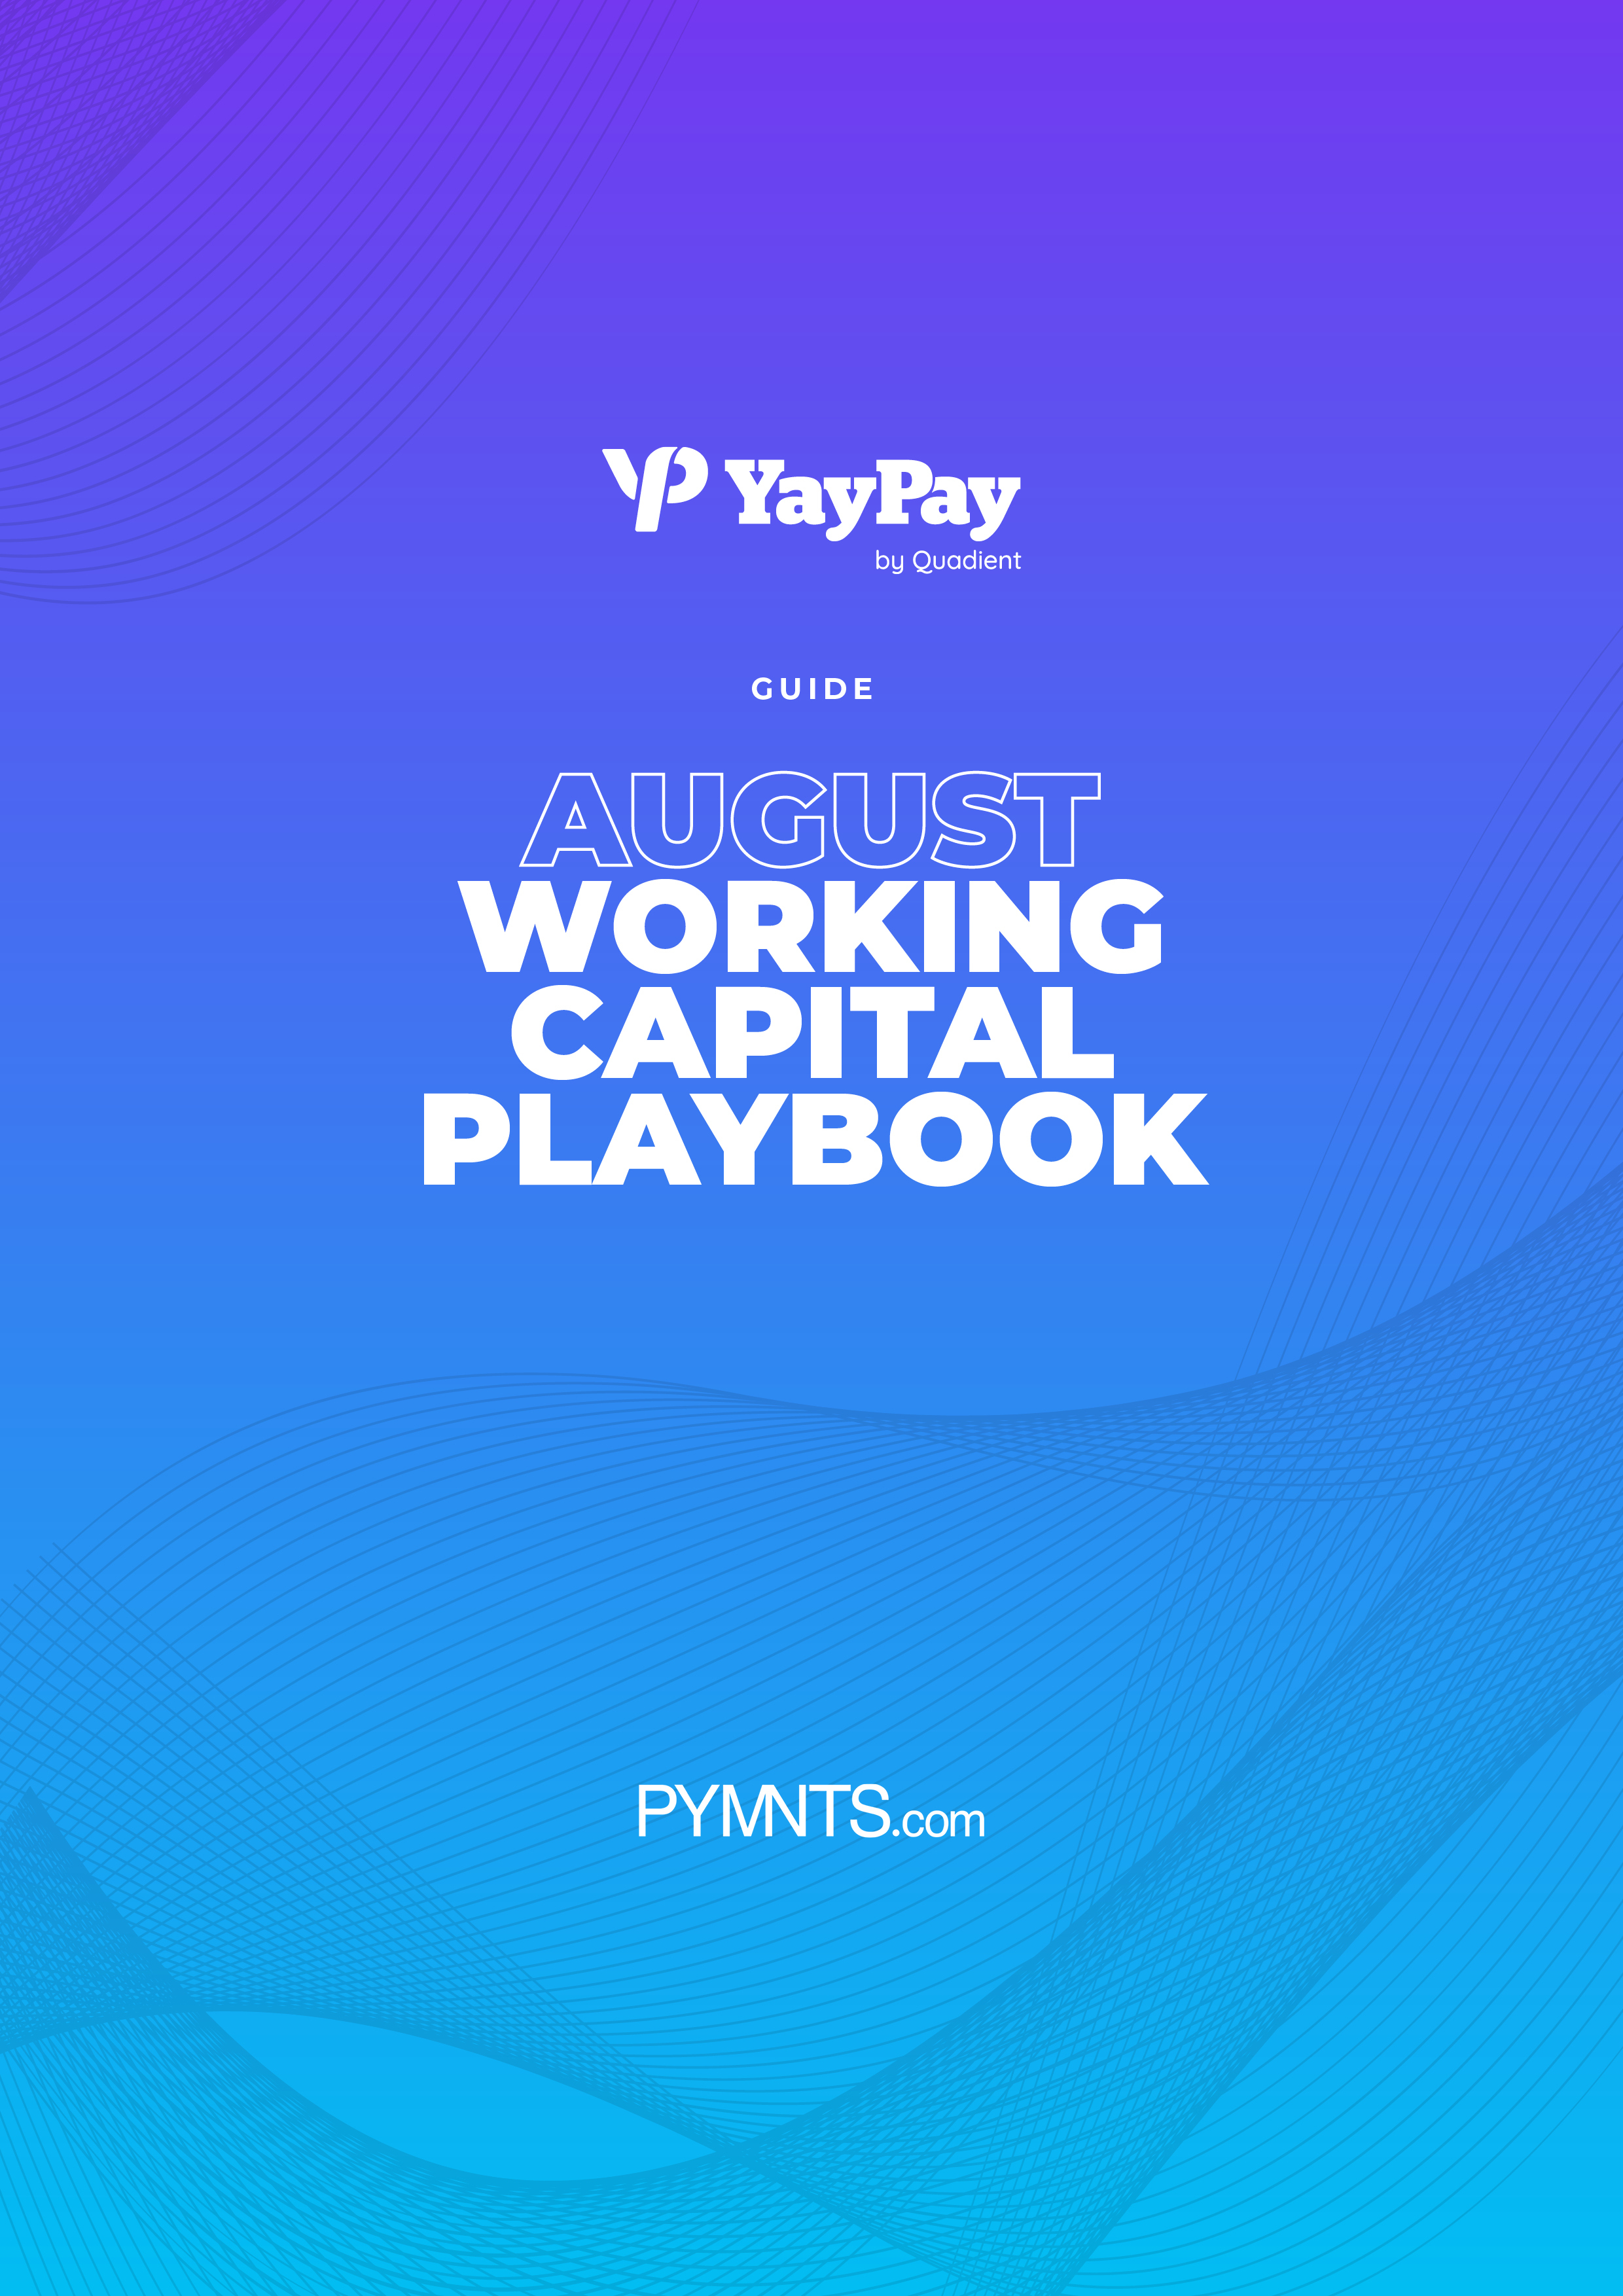 August Working Capital Playbook